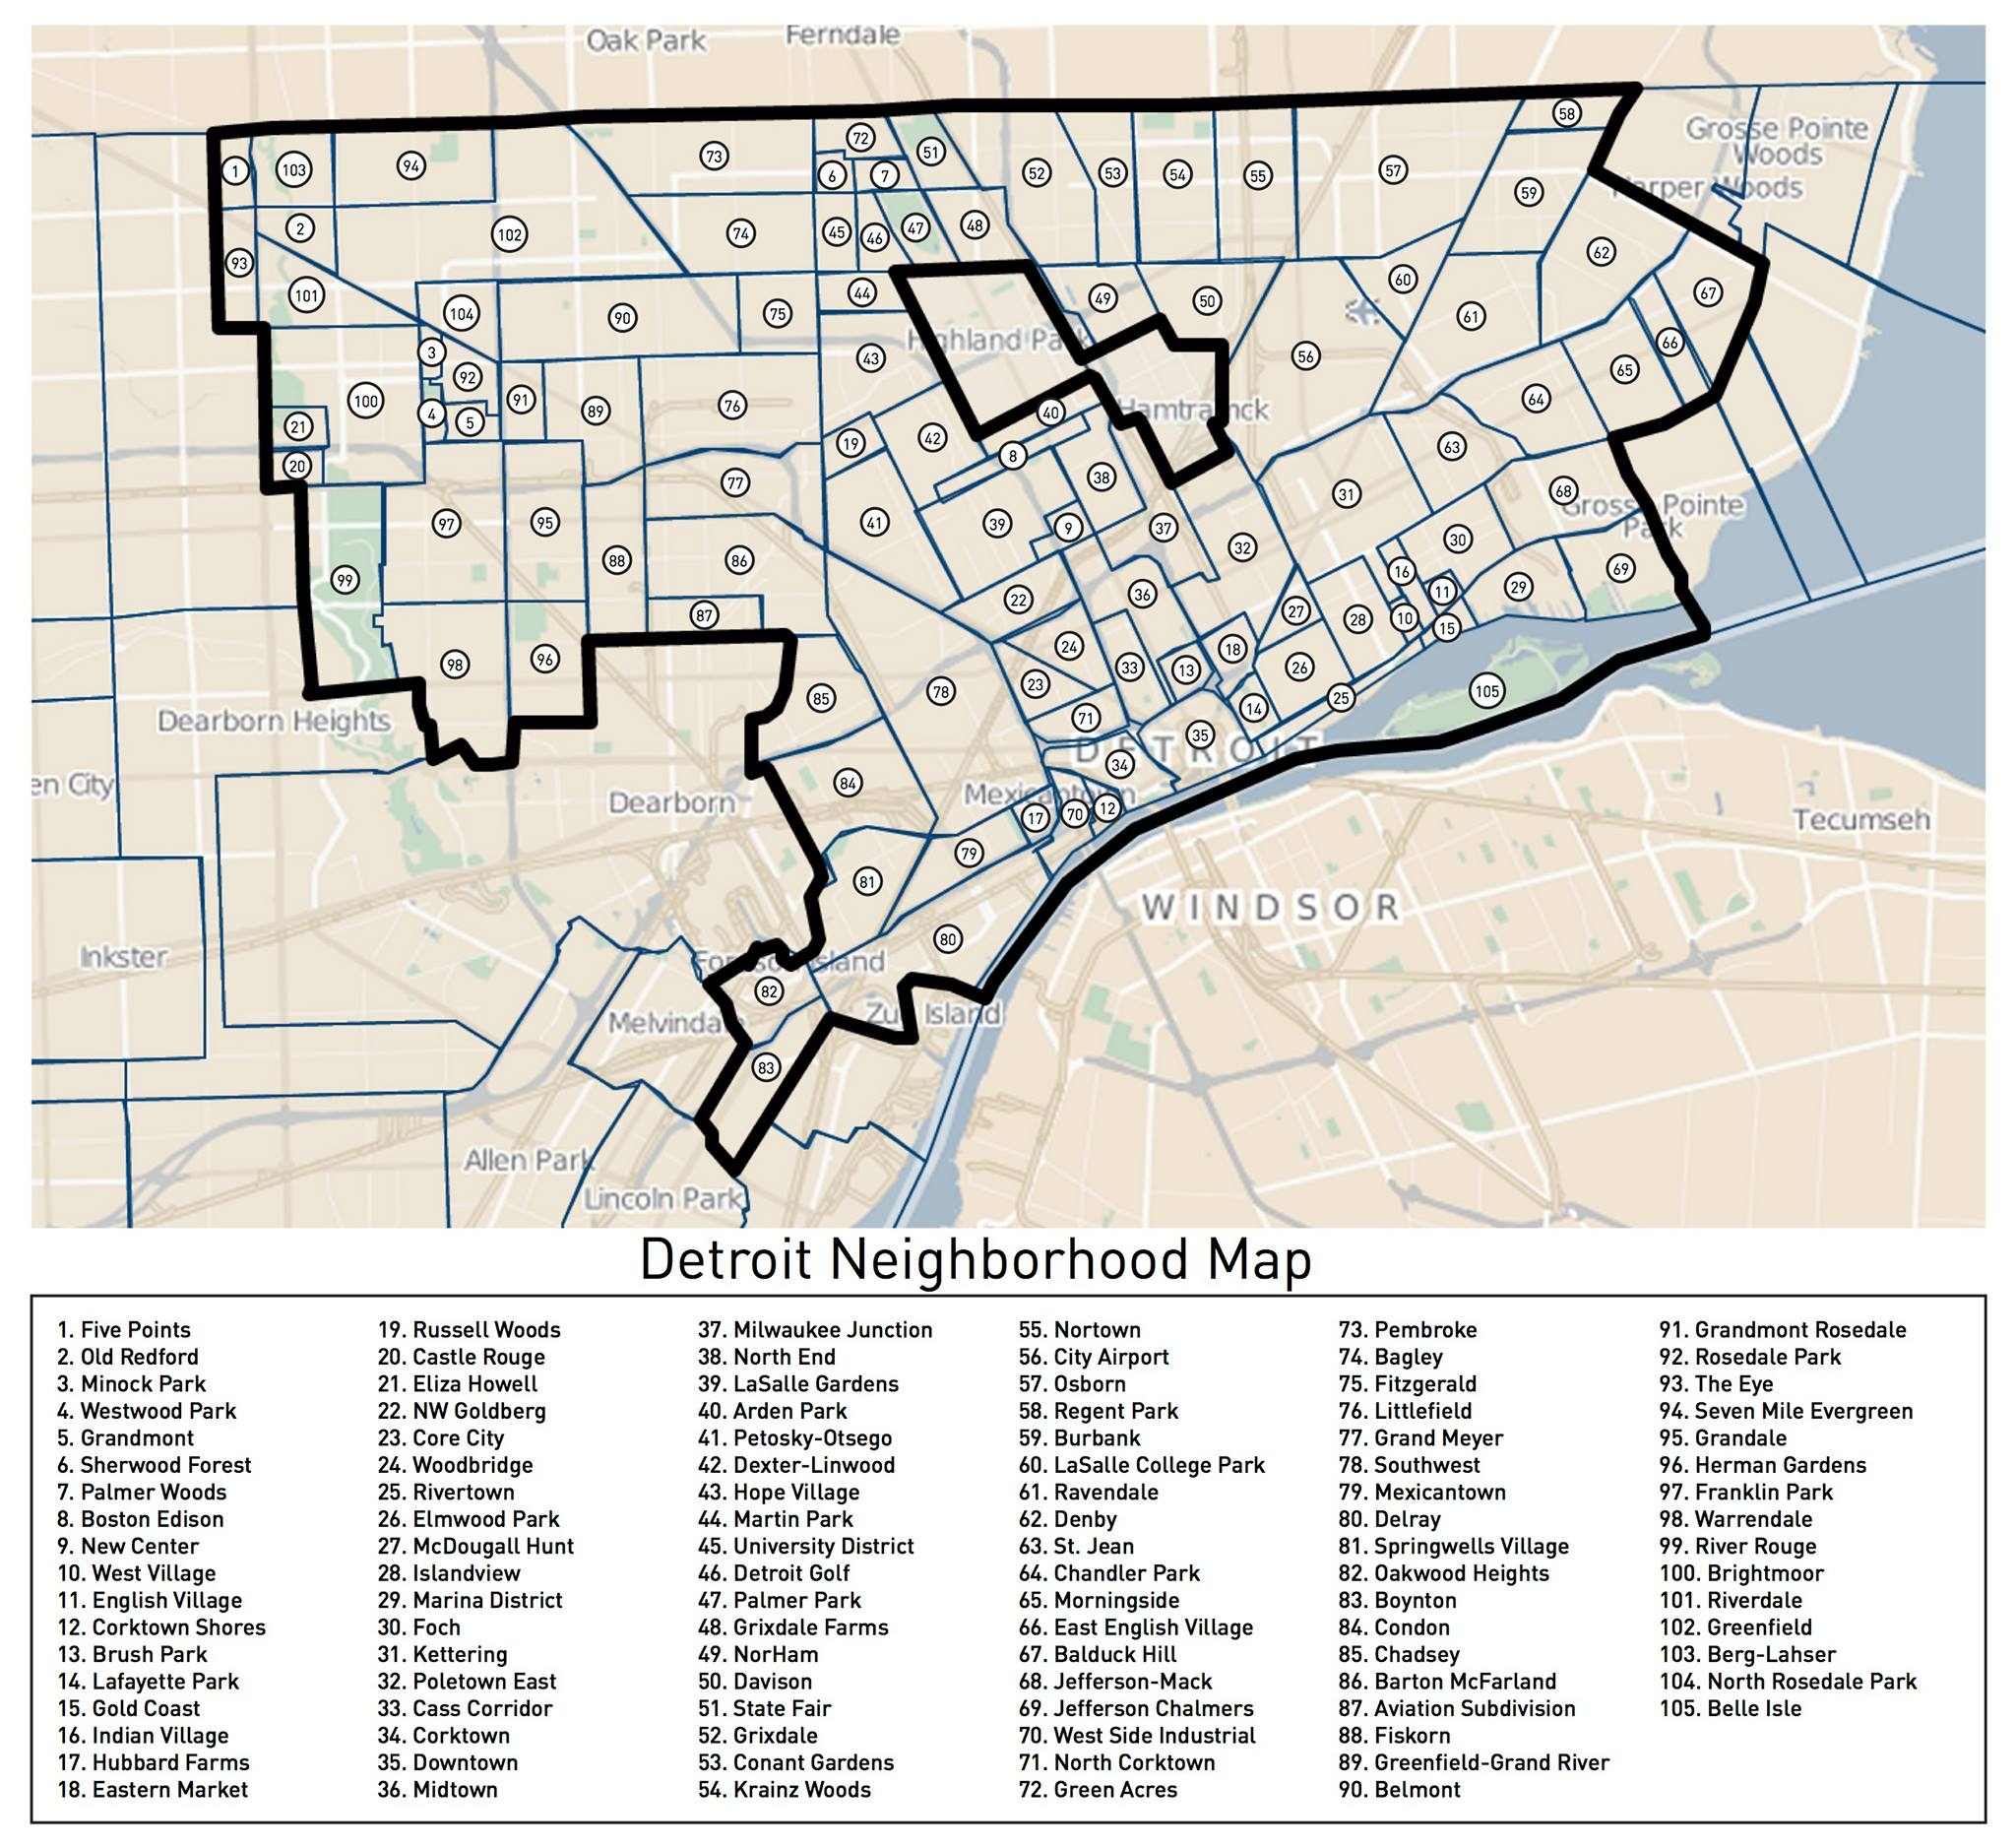 land's Detroit Neighborhoods Map | DETROITography on map of arizona state fairgrounds, map downtown chand er, map of camelback mountain, map of arizona state capitol, map of camelback ranch, map of kierland commons, map of phoenix art museum, map of phoenix symphony hall, map of scottsdale, map of arizona mills,